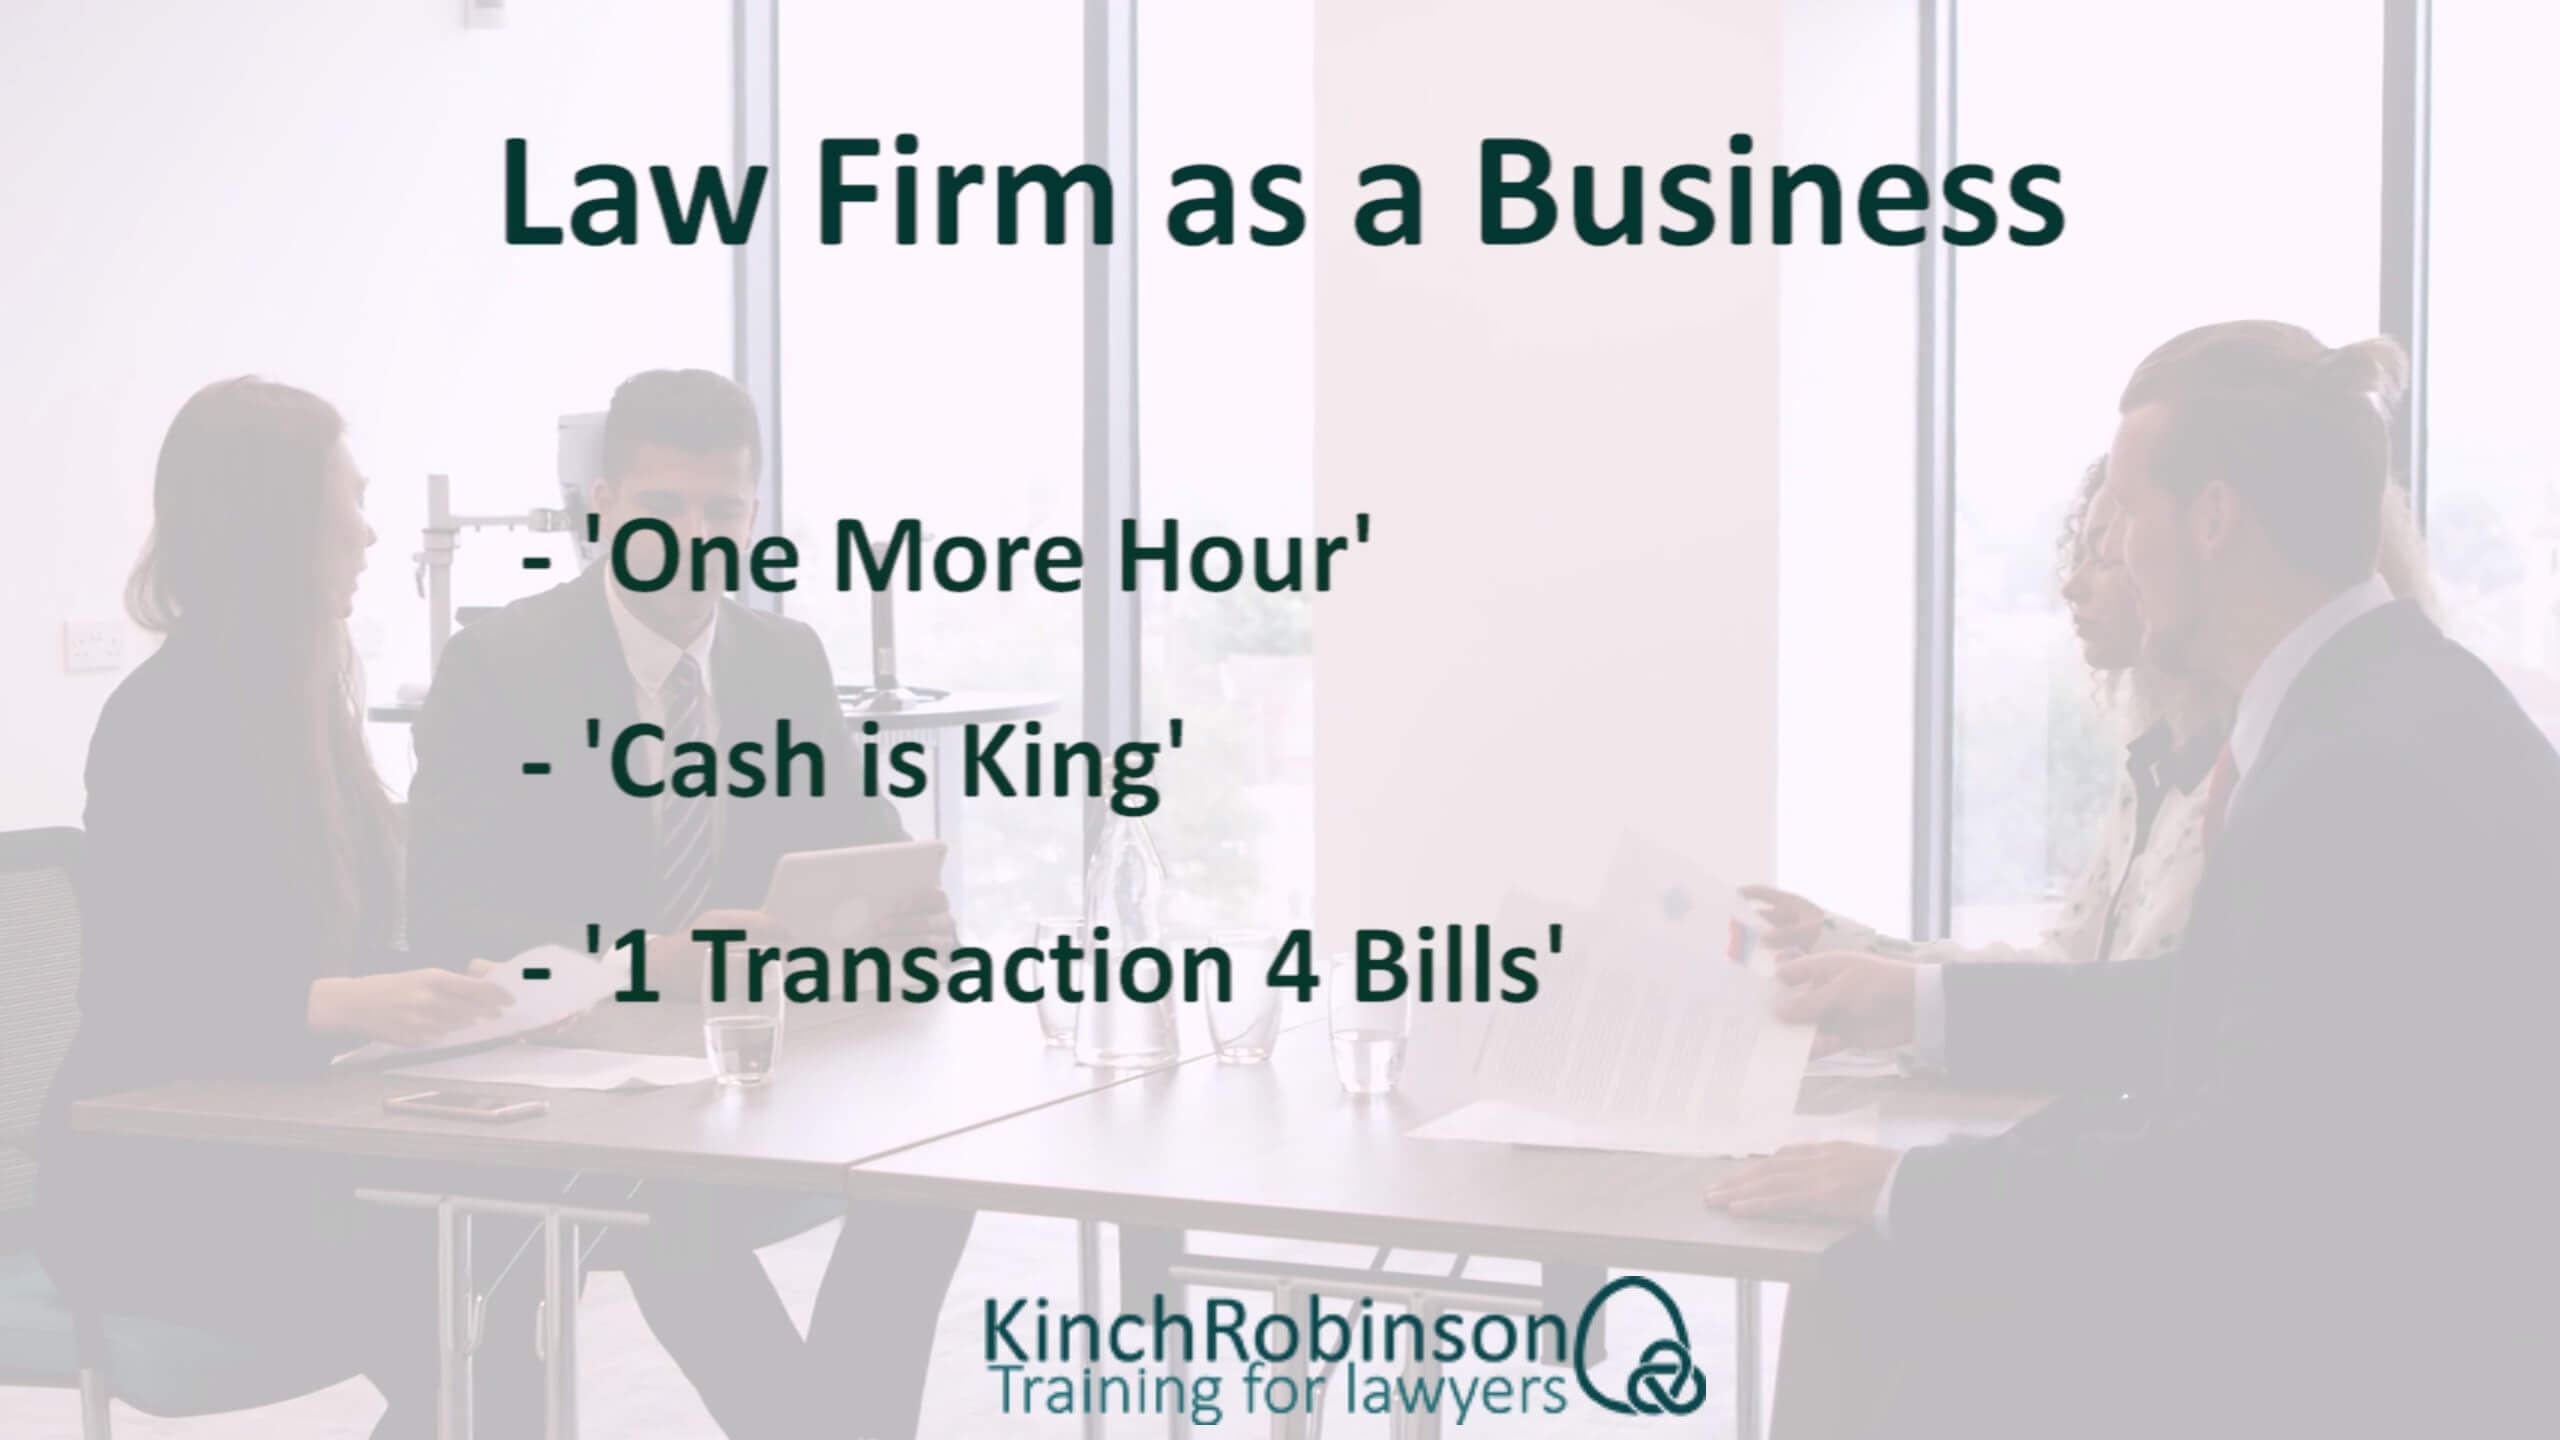 Law firm as a business training slide